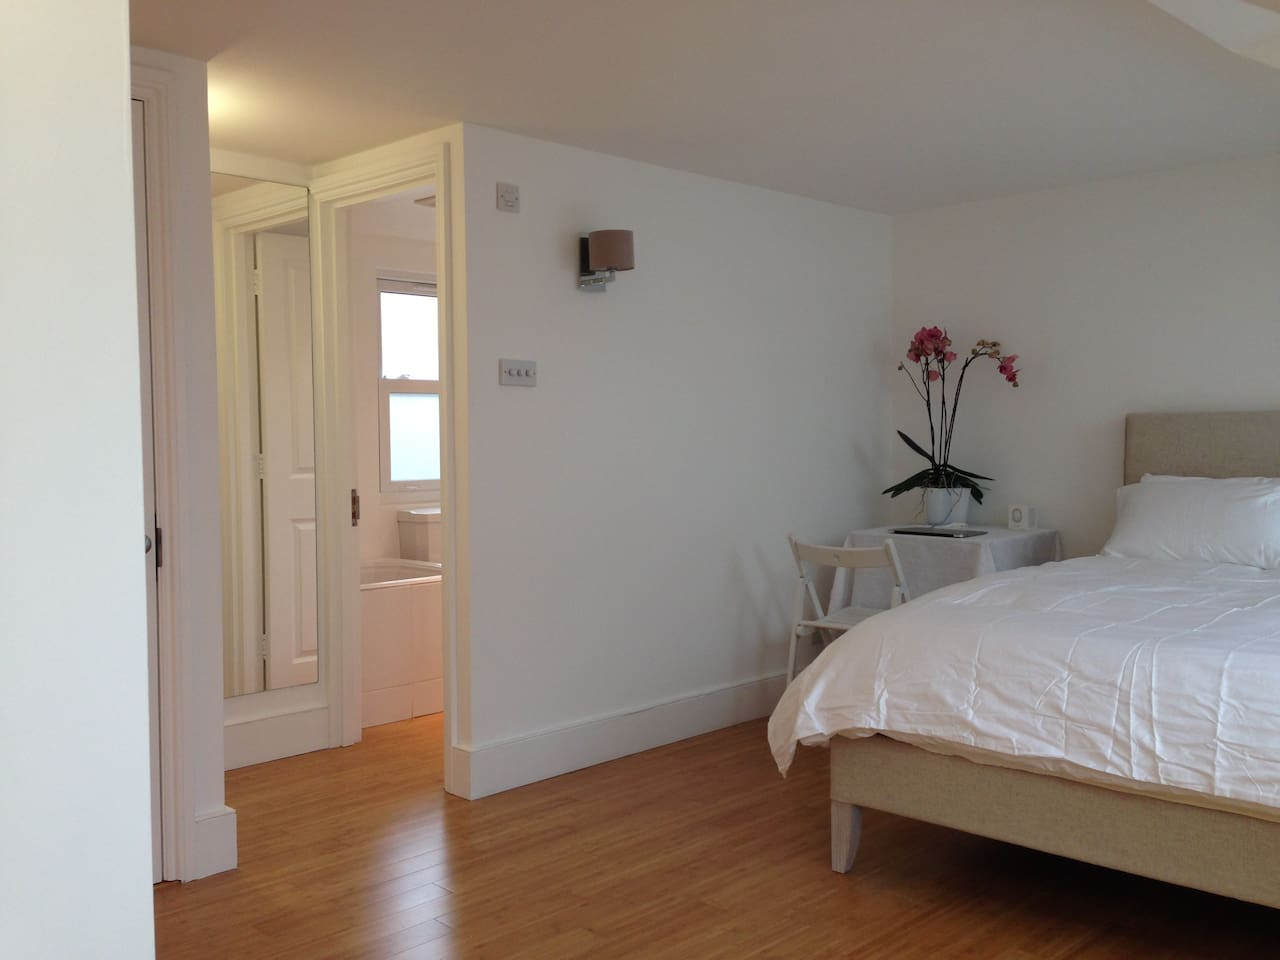 private, bright topfloor room; new kingsize bed/mattress